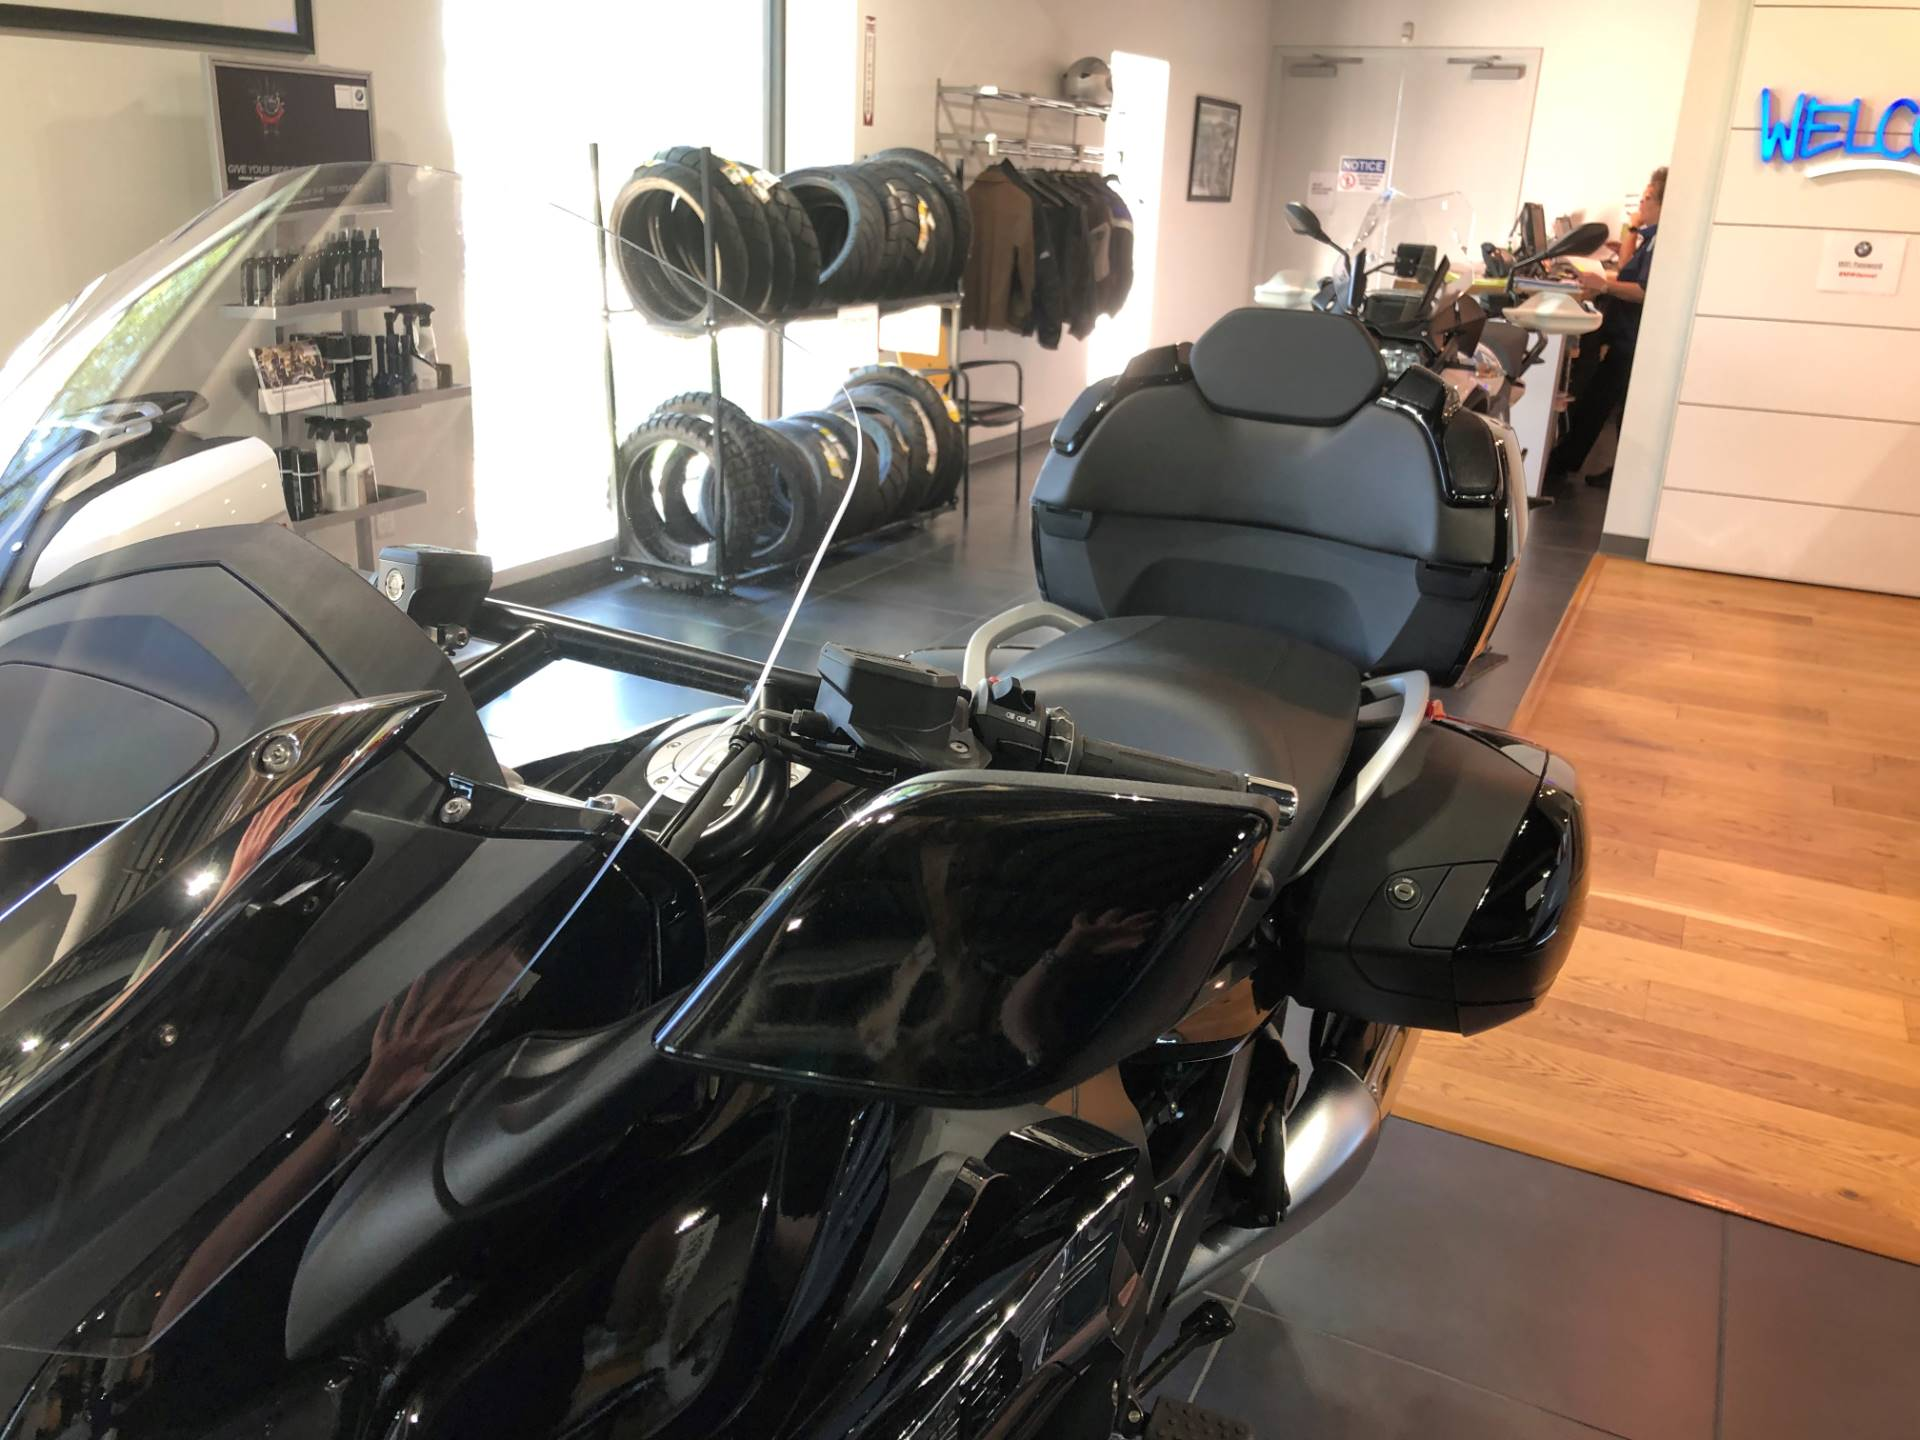 2020 BMW K 1600 B in Centennial, Colorado - Photo 7